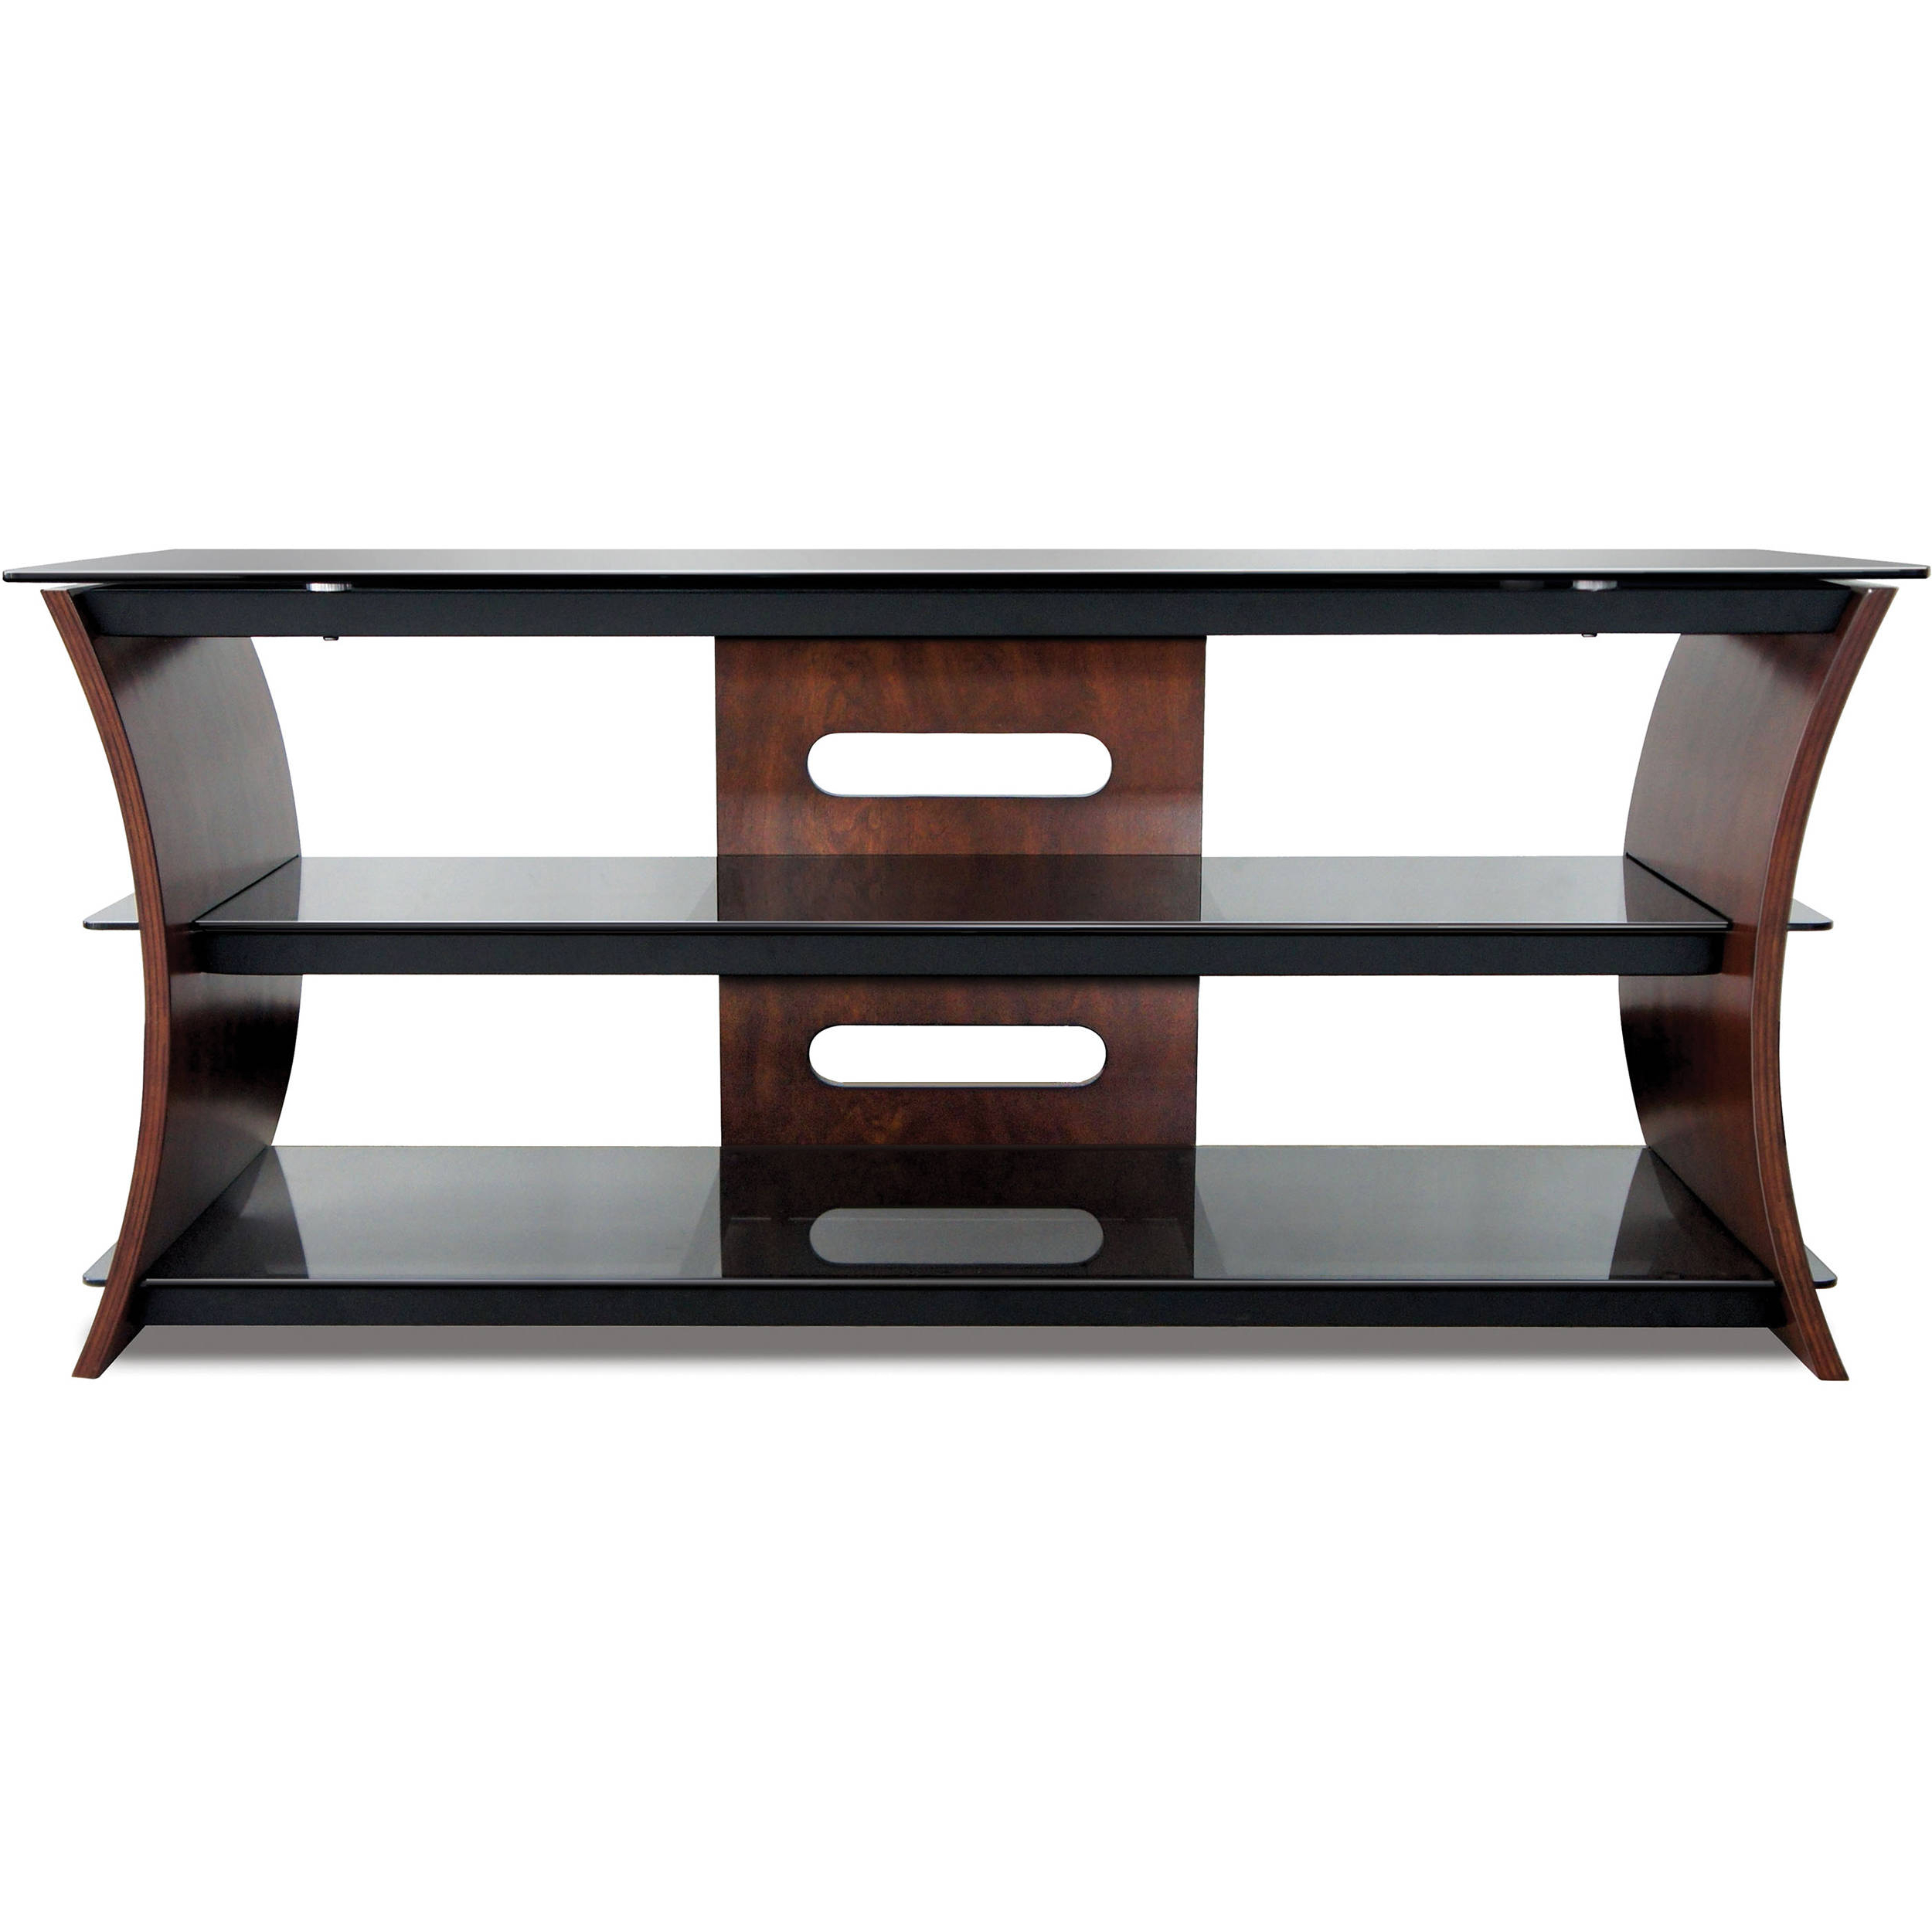 Bell'o Cw356 Curved Wood Tv Stand Cw356 B&h Photo Video With Famous Contemporary Wood Tv Stands (View 3 of 20)